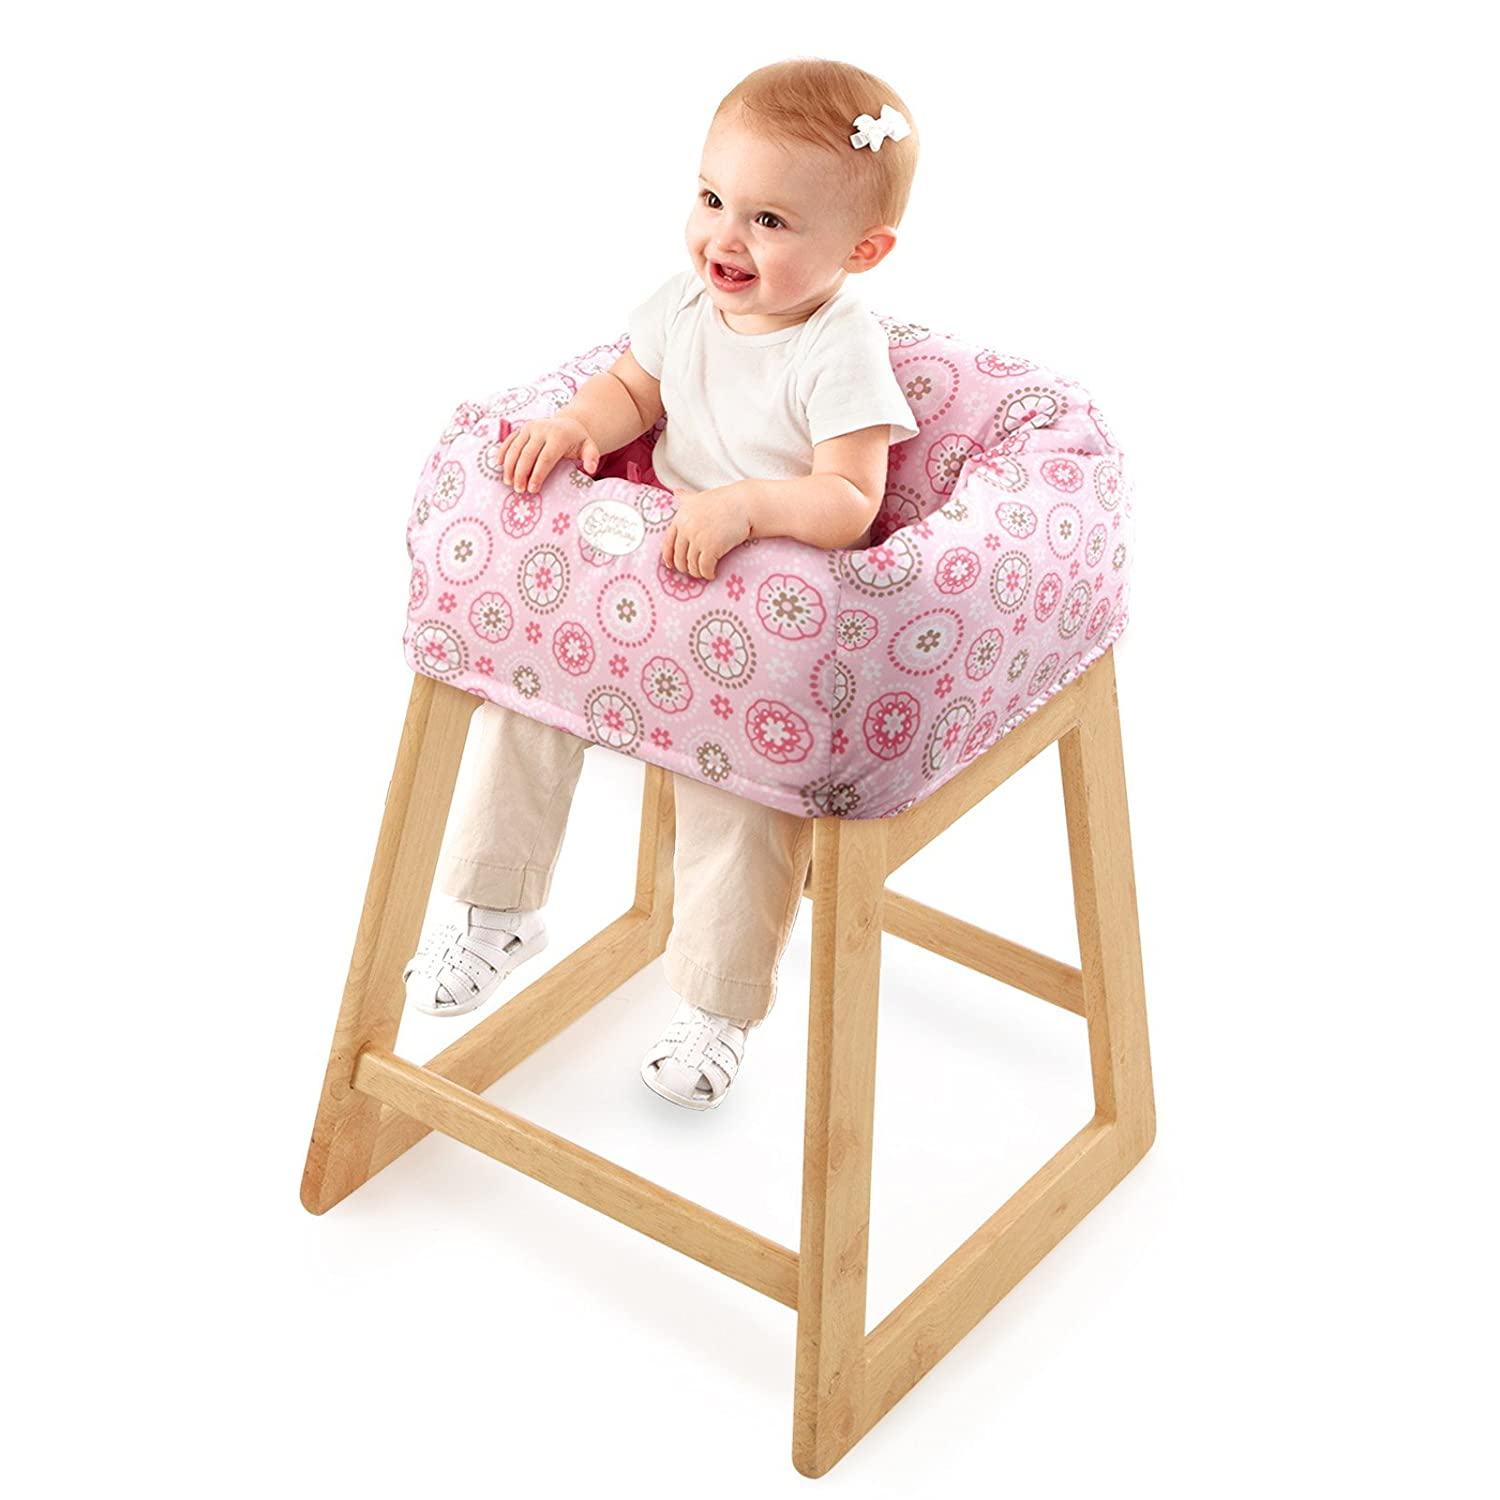 shopping cart high chair cover portable baby toddler safe storage pocket travel ebay. Black Bedroom Furniture Sets. Home Design Ideas